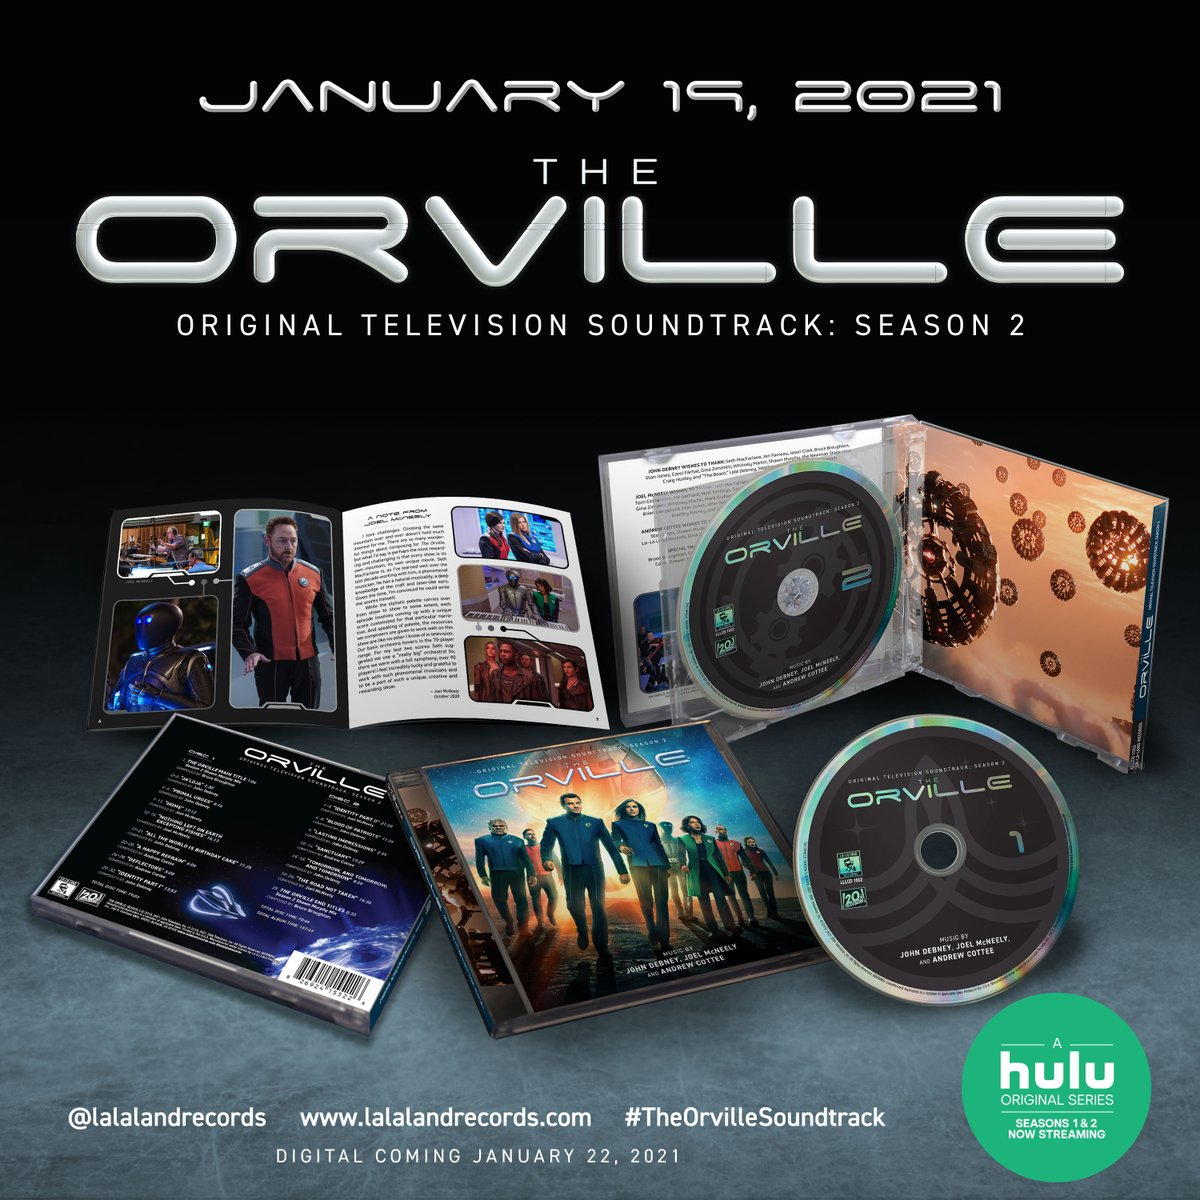 It's docked! @TheOrville Season 2 #Soundtrack 2-CD set by @JohnDebney @joelsephmc @cotteemusic ORDER NOW at    #TheOrvilleSoundtrack @SethMacFarlane @hulu